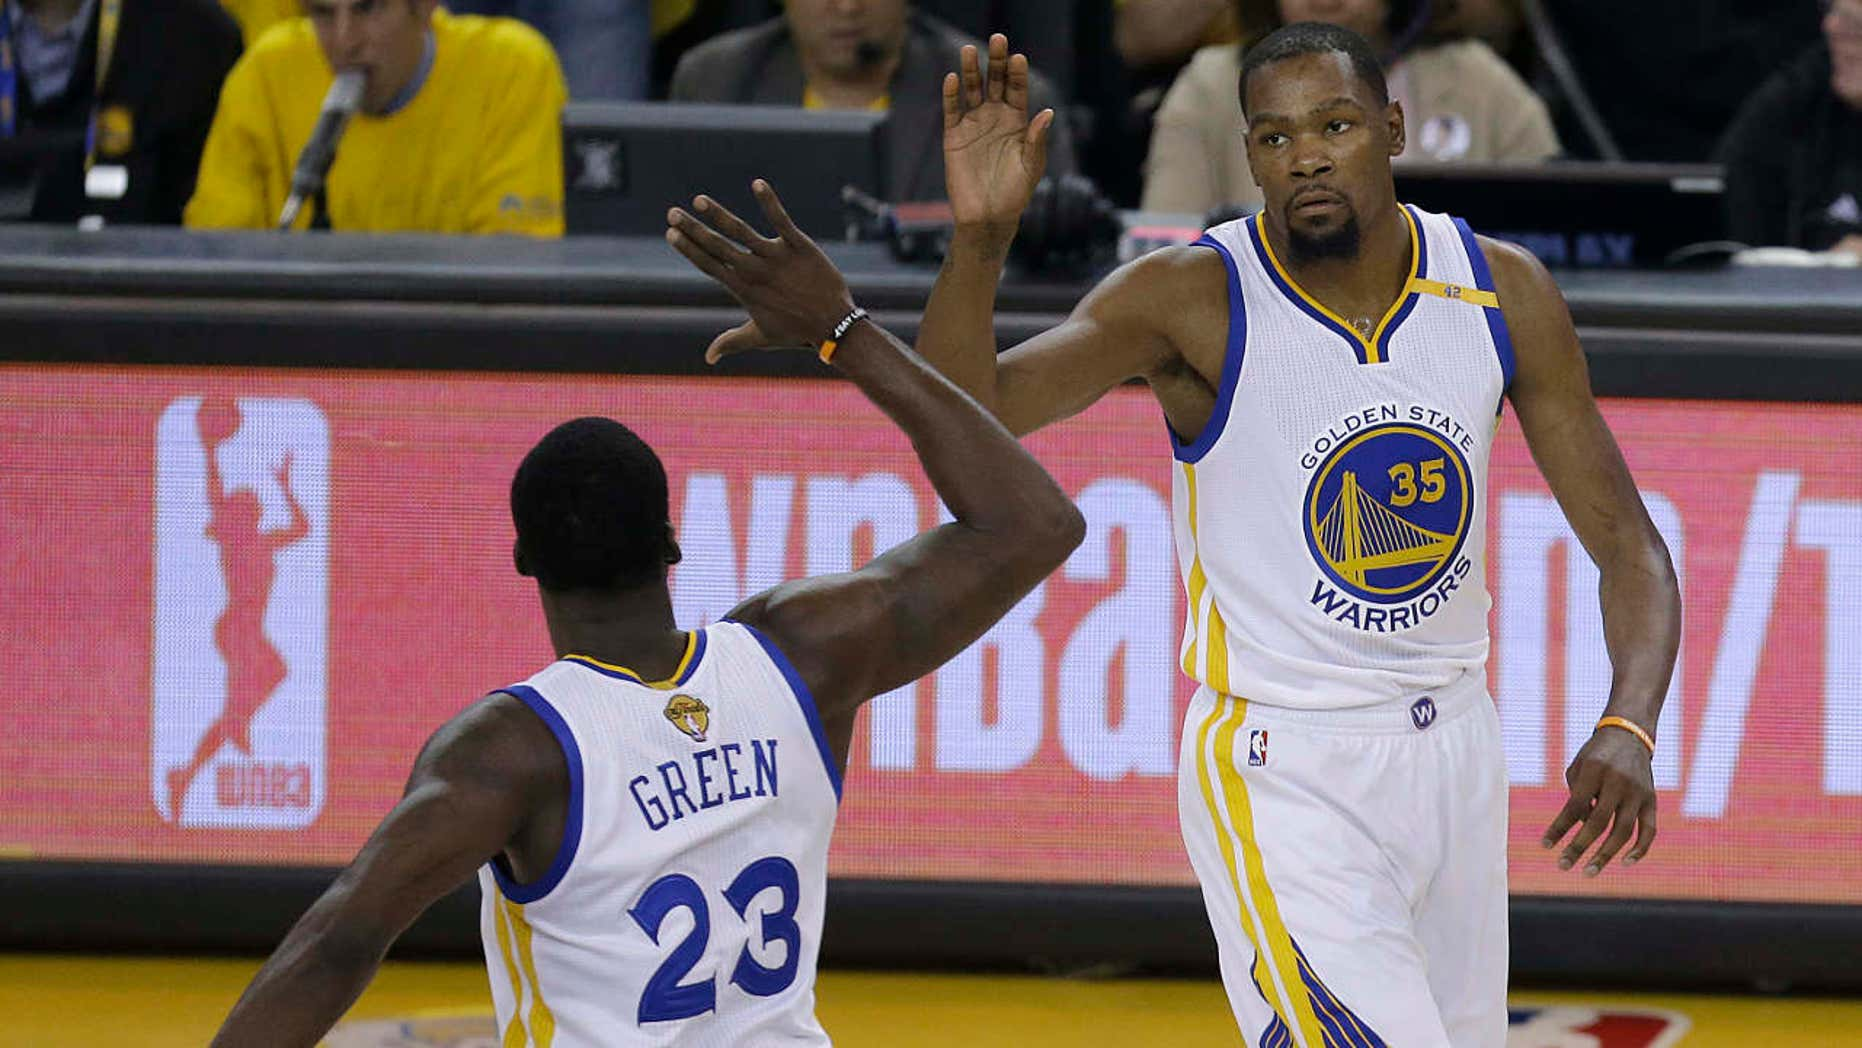 Golden State Warriors forward Kevin Durant (35) and forward Draymond Green (23) celebrate during the first half of Game 2 of basketball's NBA Finals against the Cleveland Cavaliers in Oakland, Calif., Sunday, June 4, 2017.